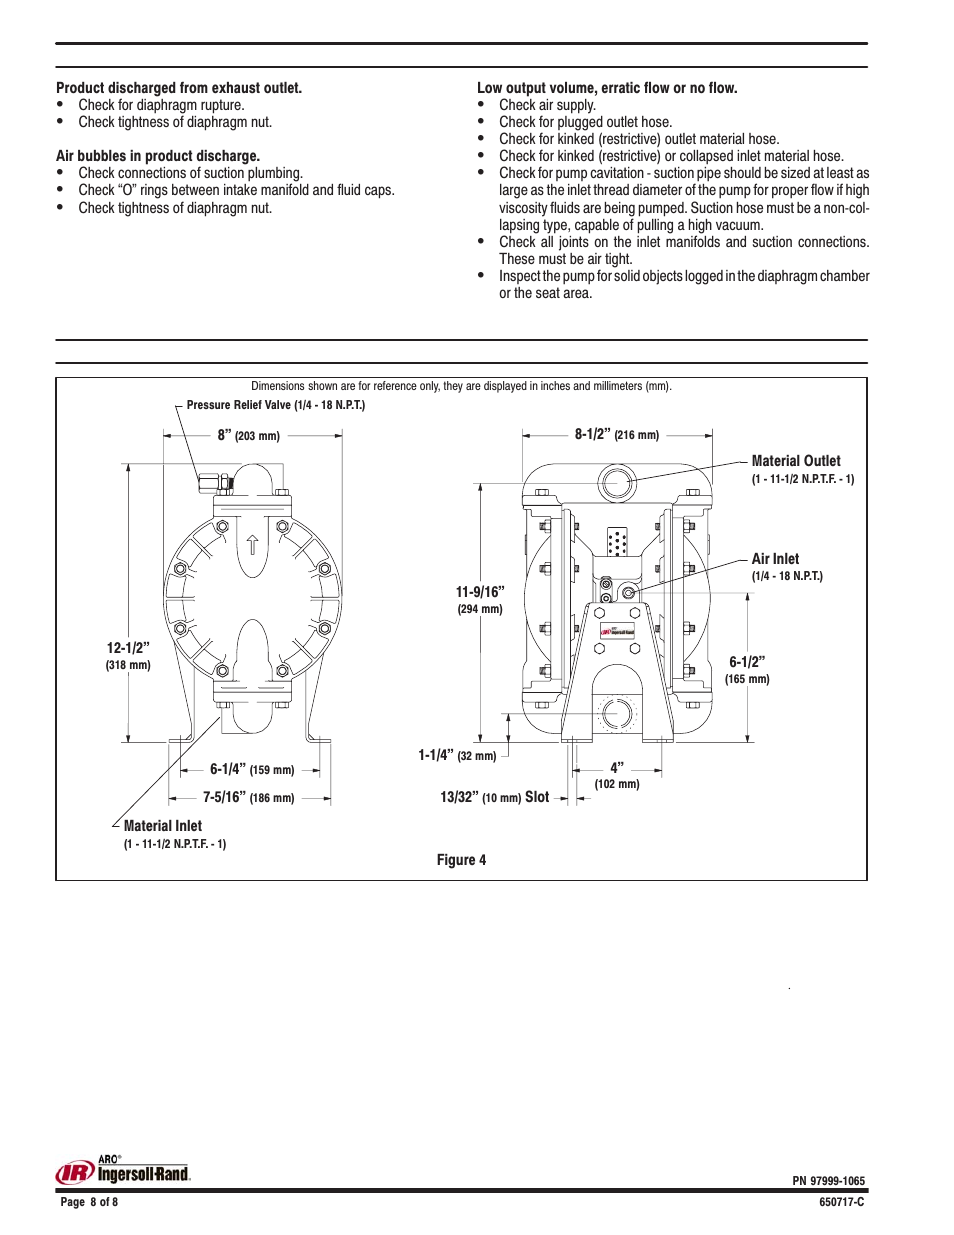 Trouble shooting, Dimensional data | Ingersoll-Rand 650717-C User Manual |  Page 8 / 8